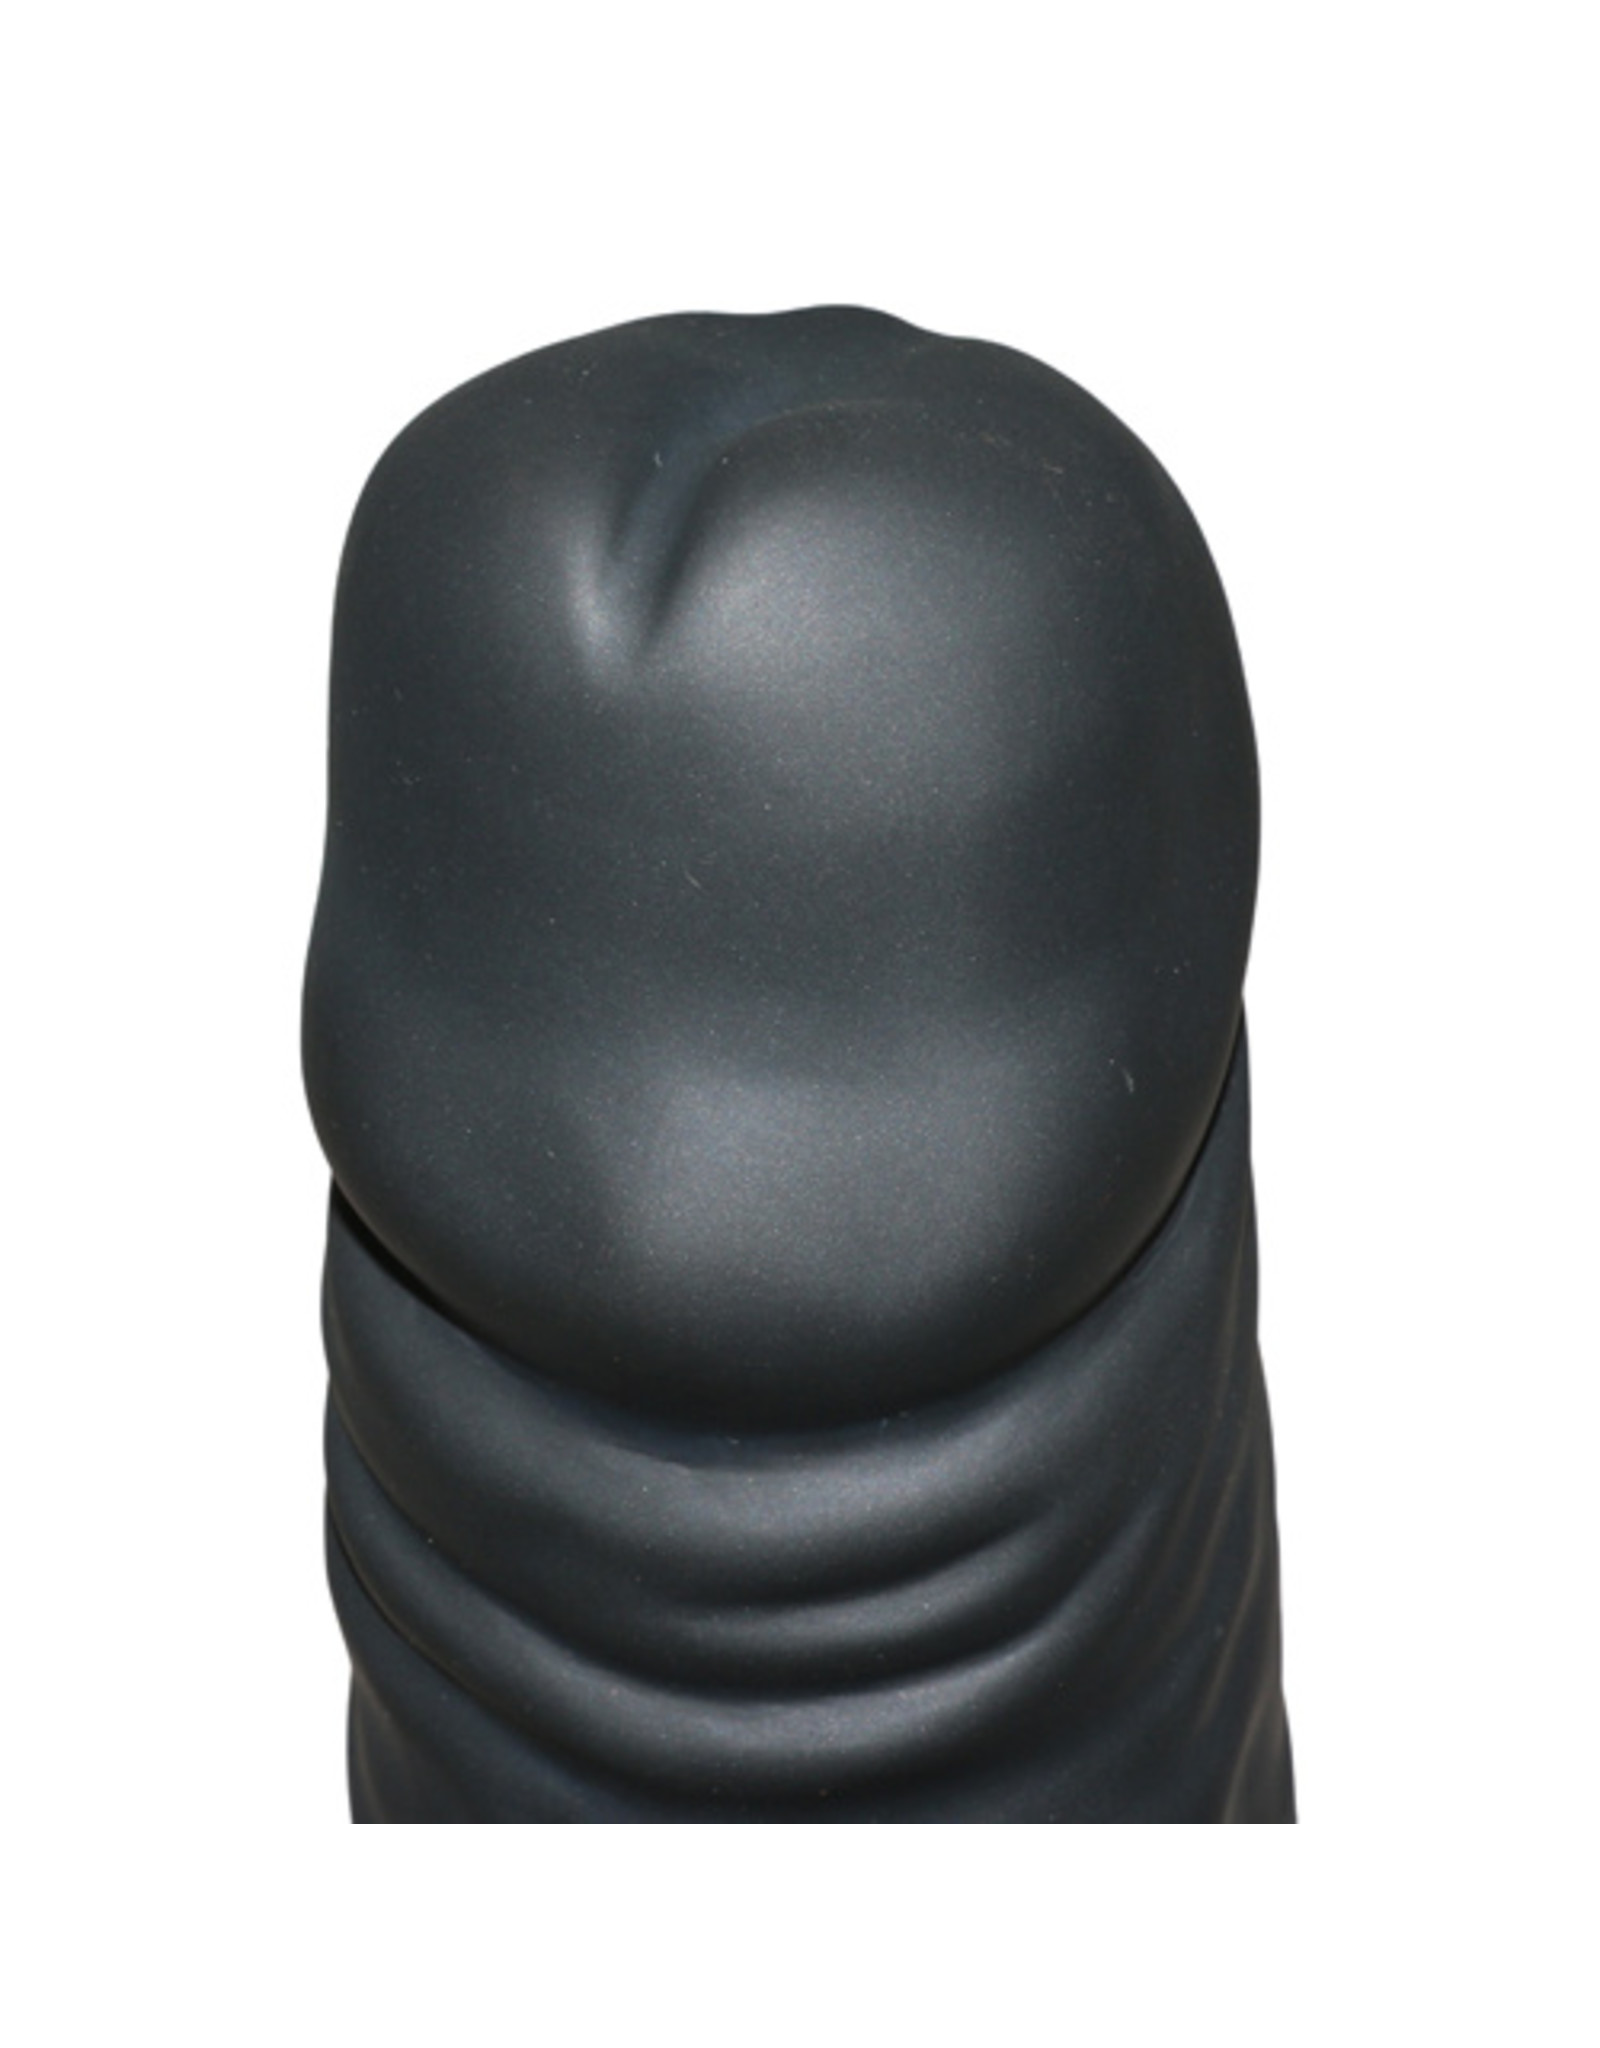 Master Series Leviathan Giant Inflatable Dildo with Internal Core